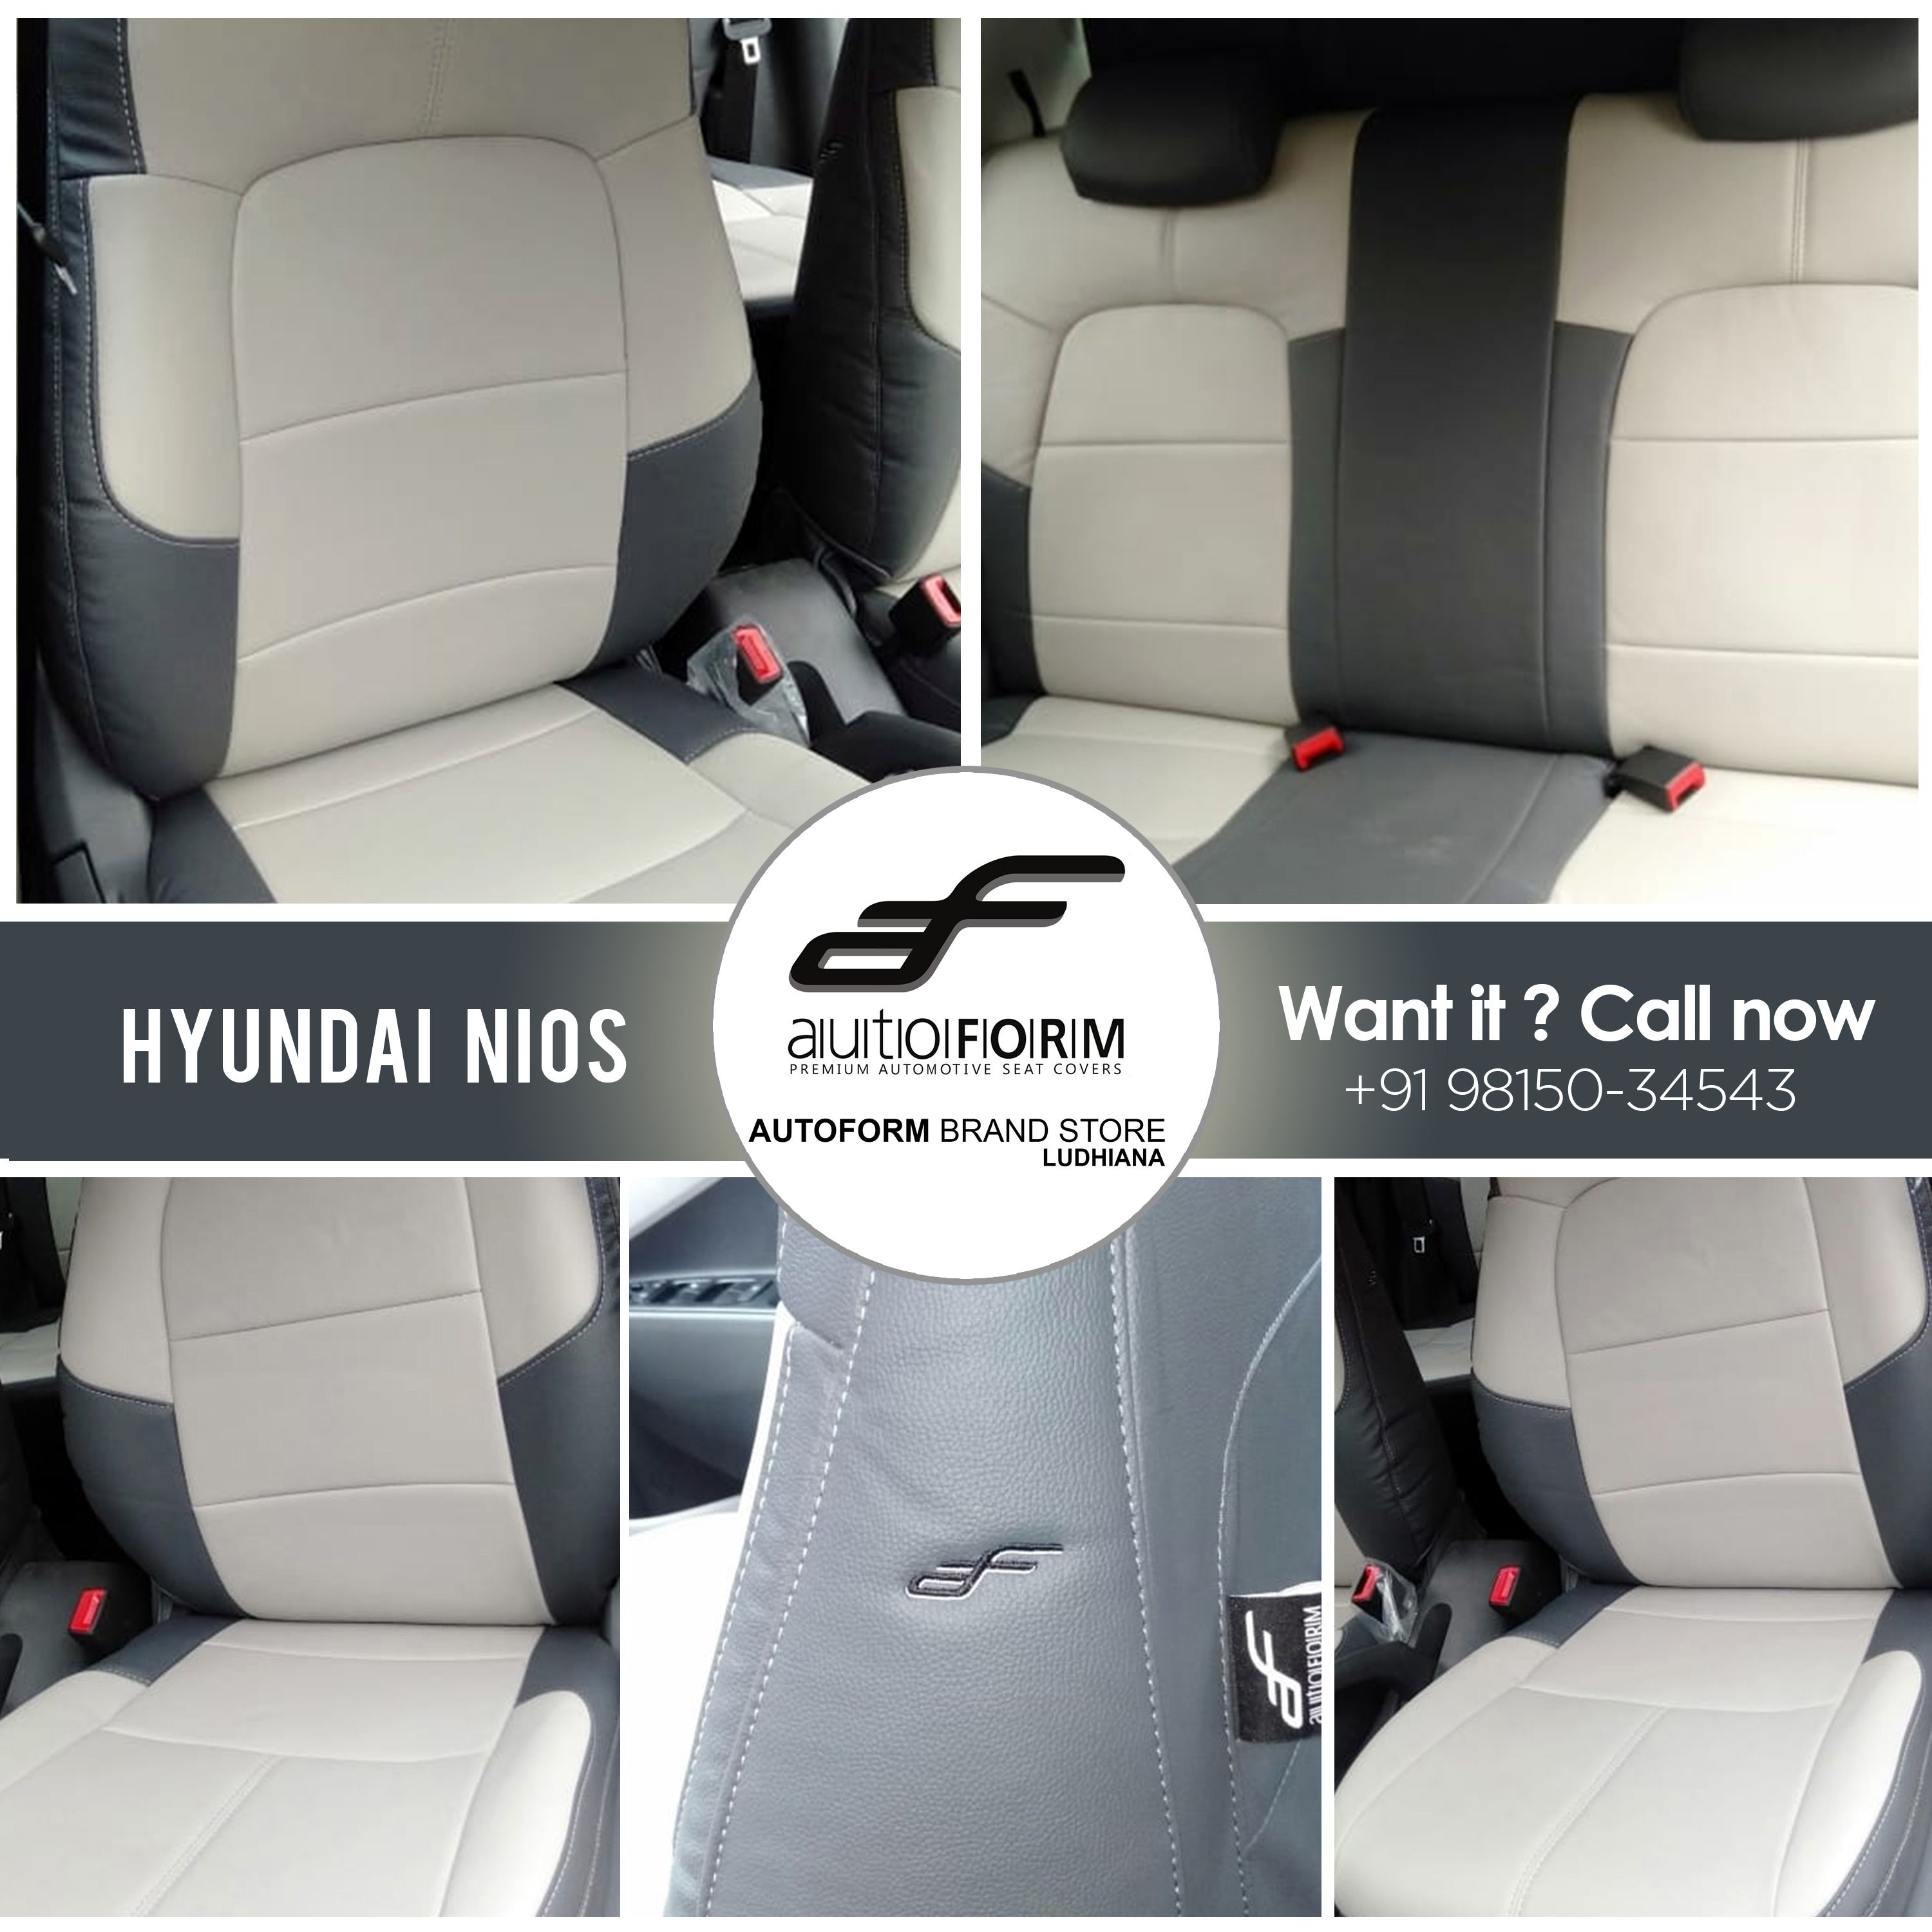 Watch Out This Stunning Hyundai I10 Nios The All New Car Has